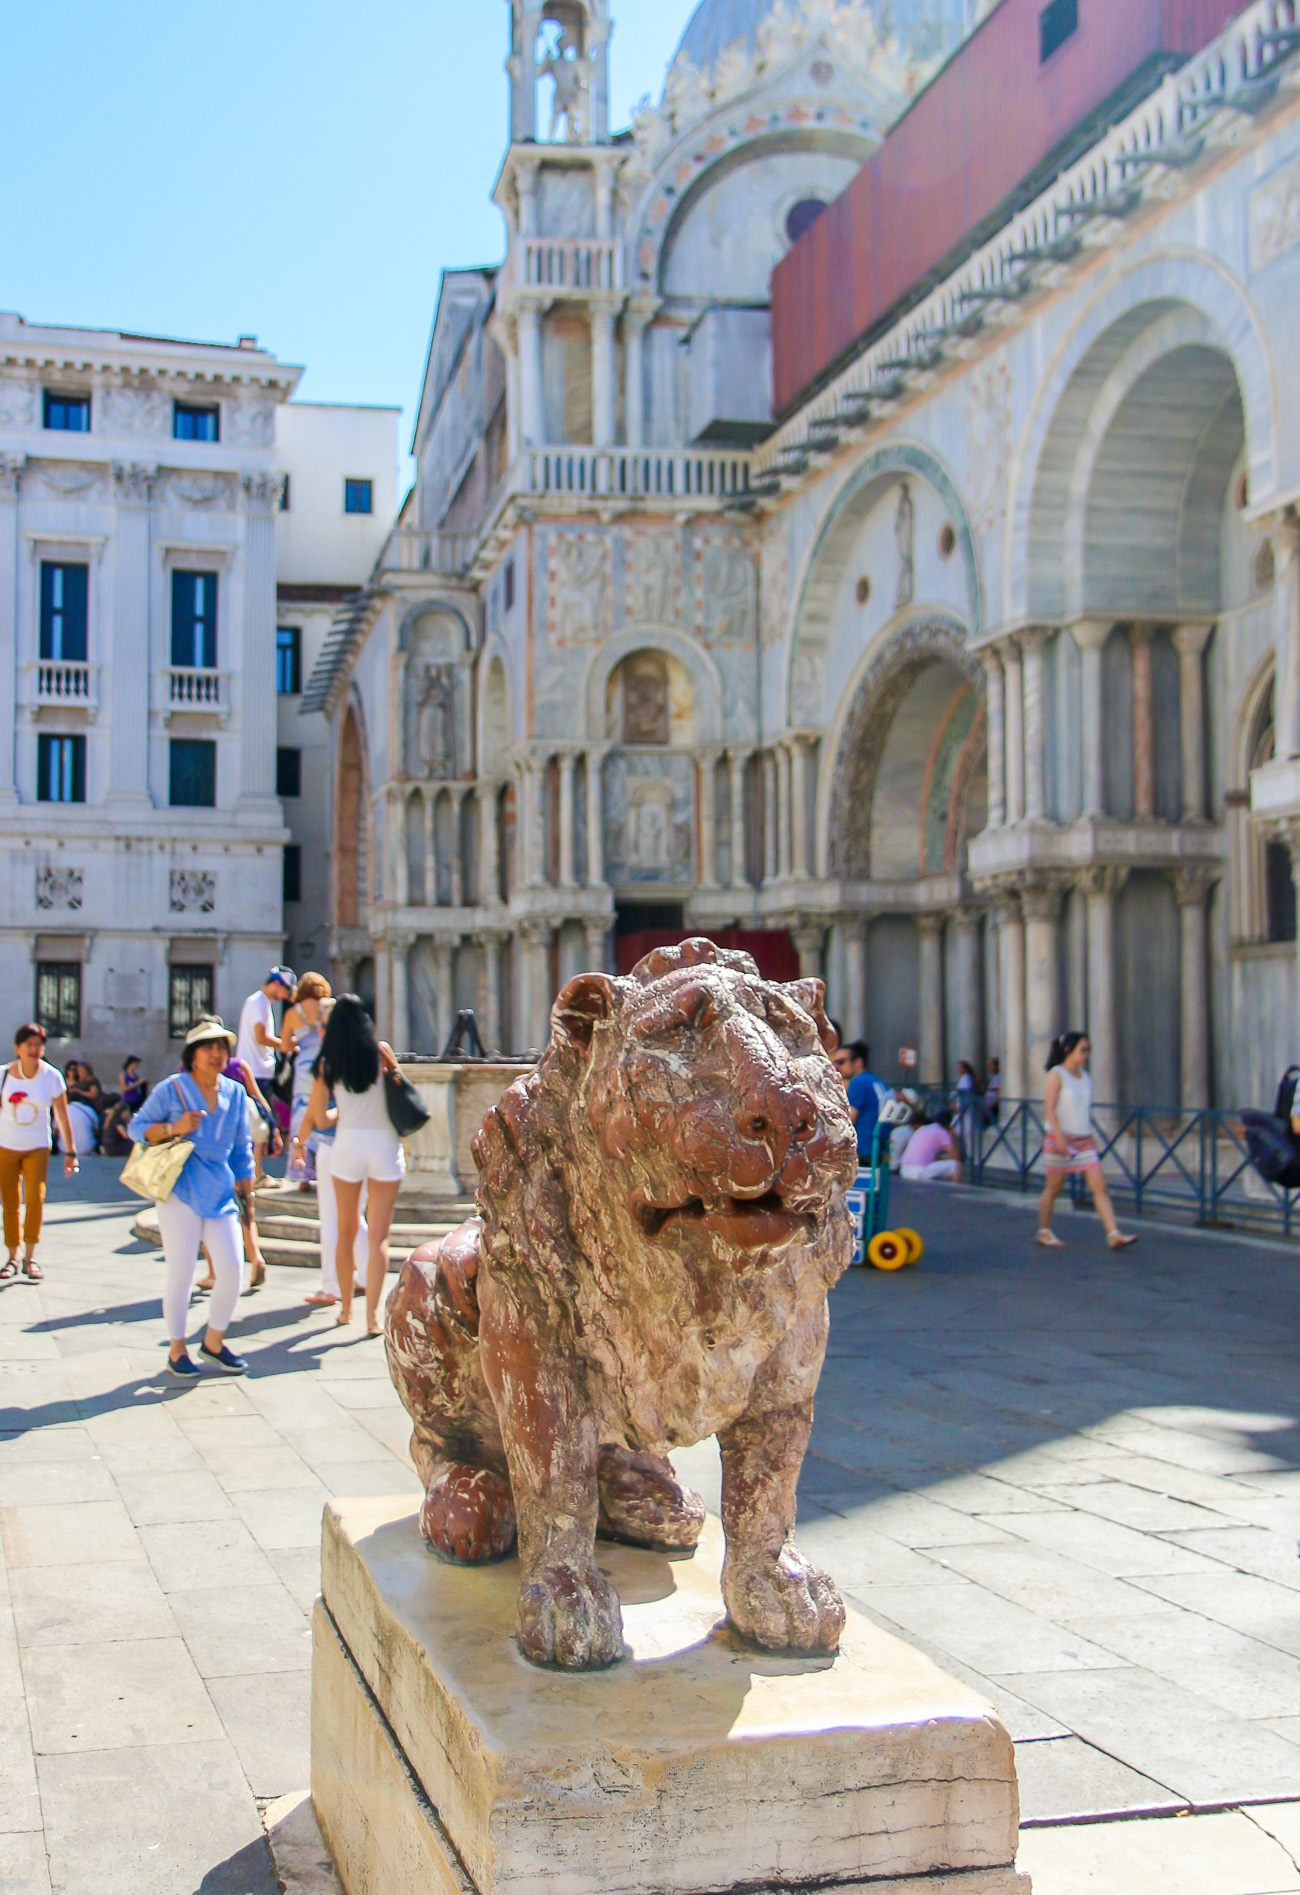 A lion near St. Mark's Basilica in Venice, Italy that we saw during a family lion hunt tour with Context Travel.